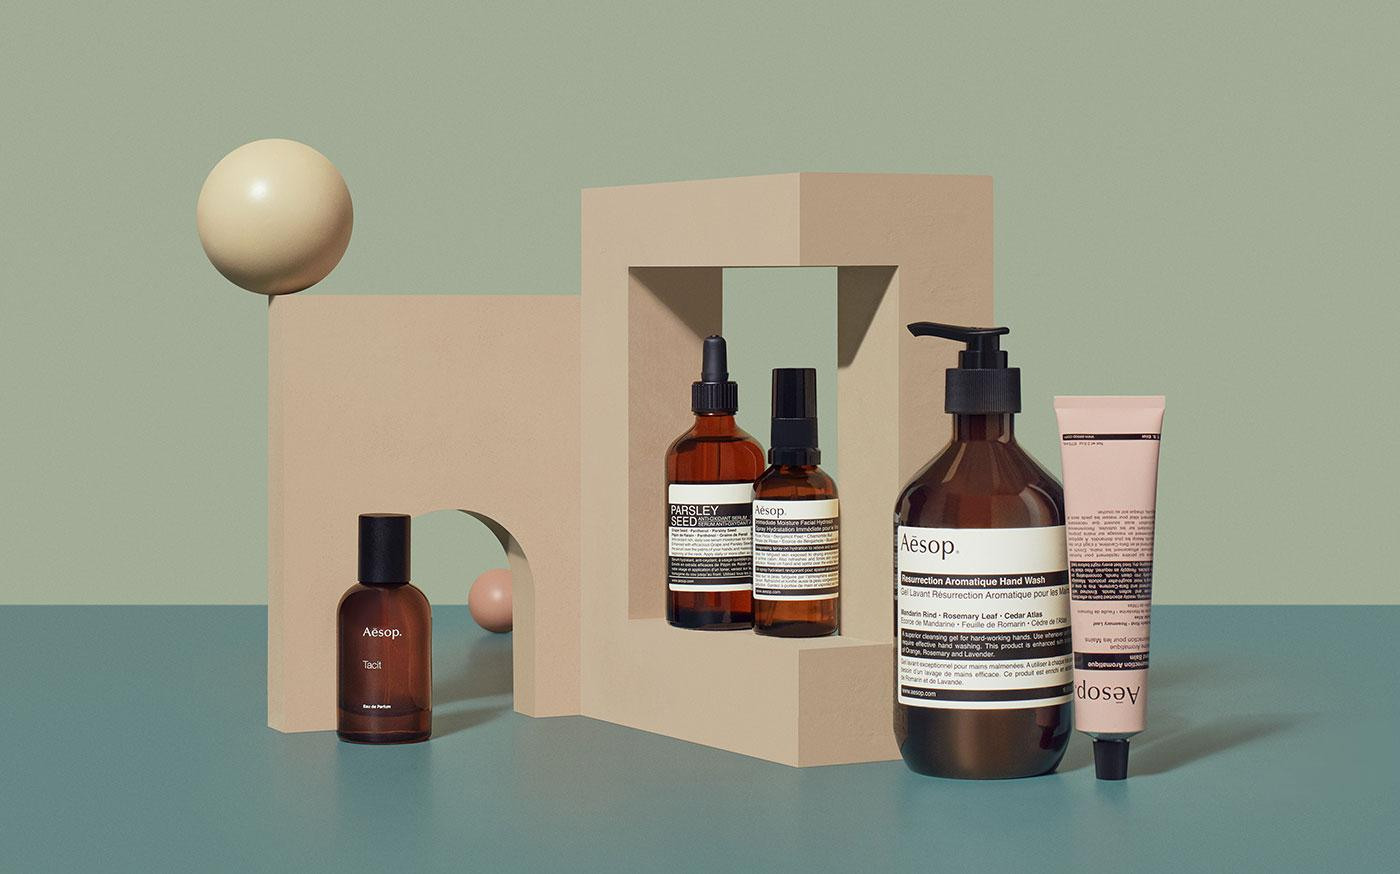 mixture of Aesop products in brown bottles against abstract geometric set of blue and light pink blocks